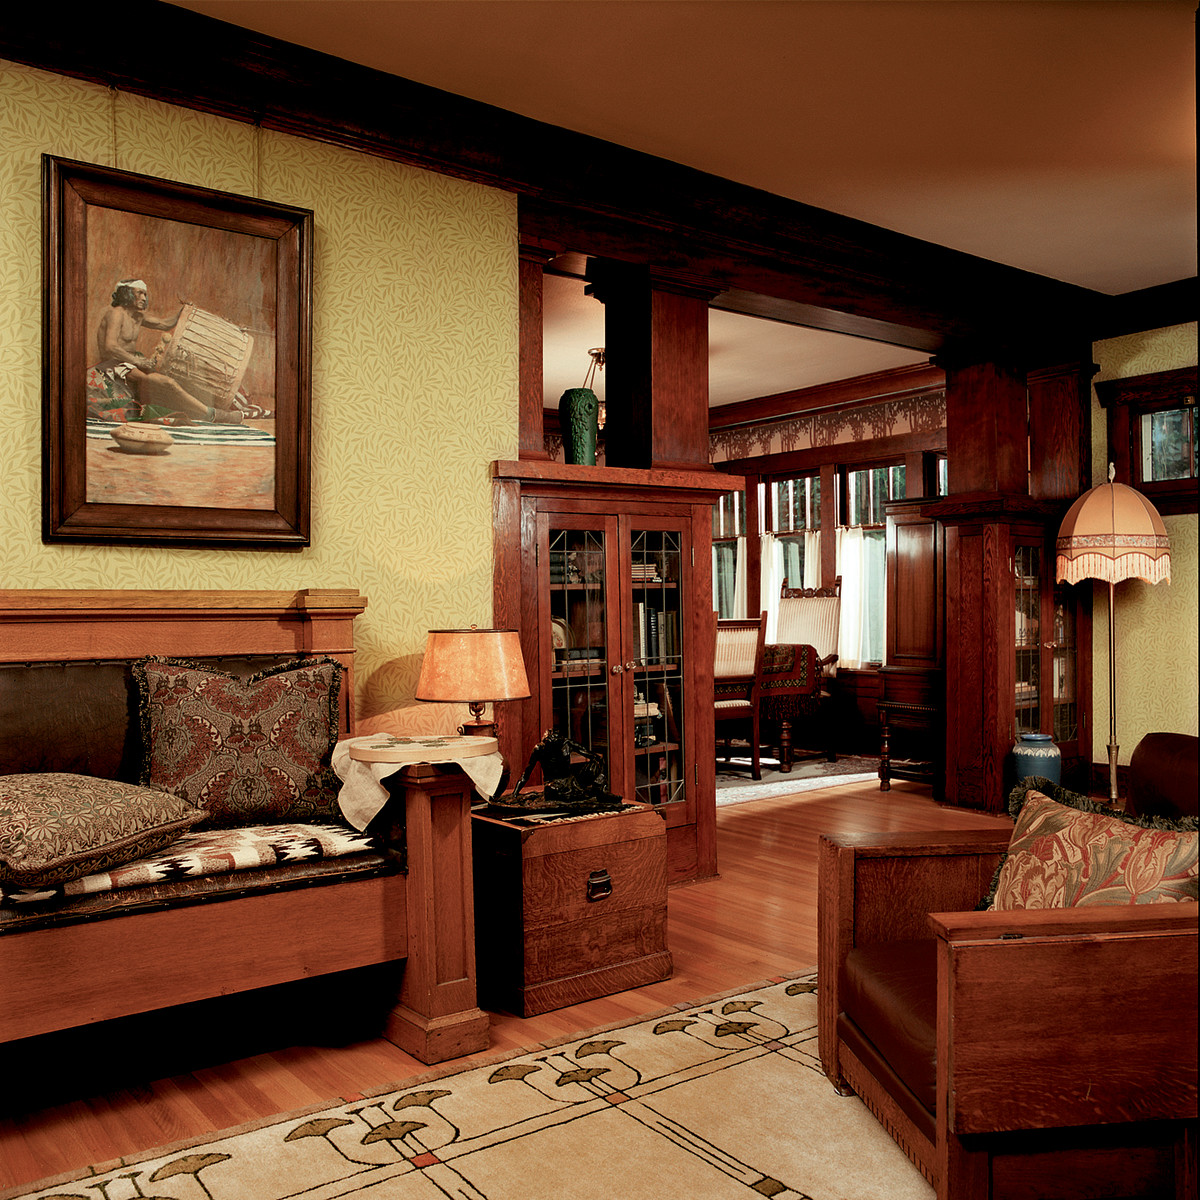 Arts & Crafts colonnade woodwork interior millwork